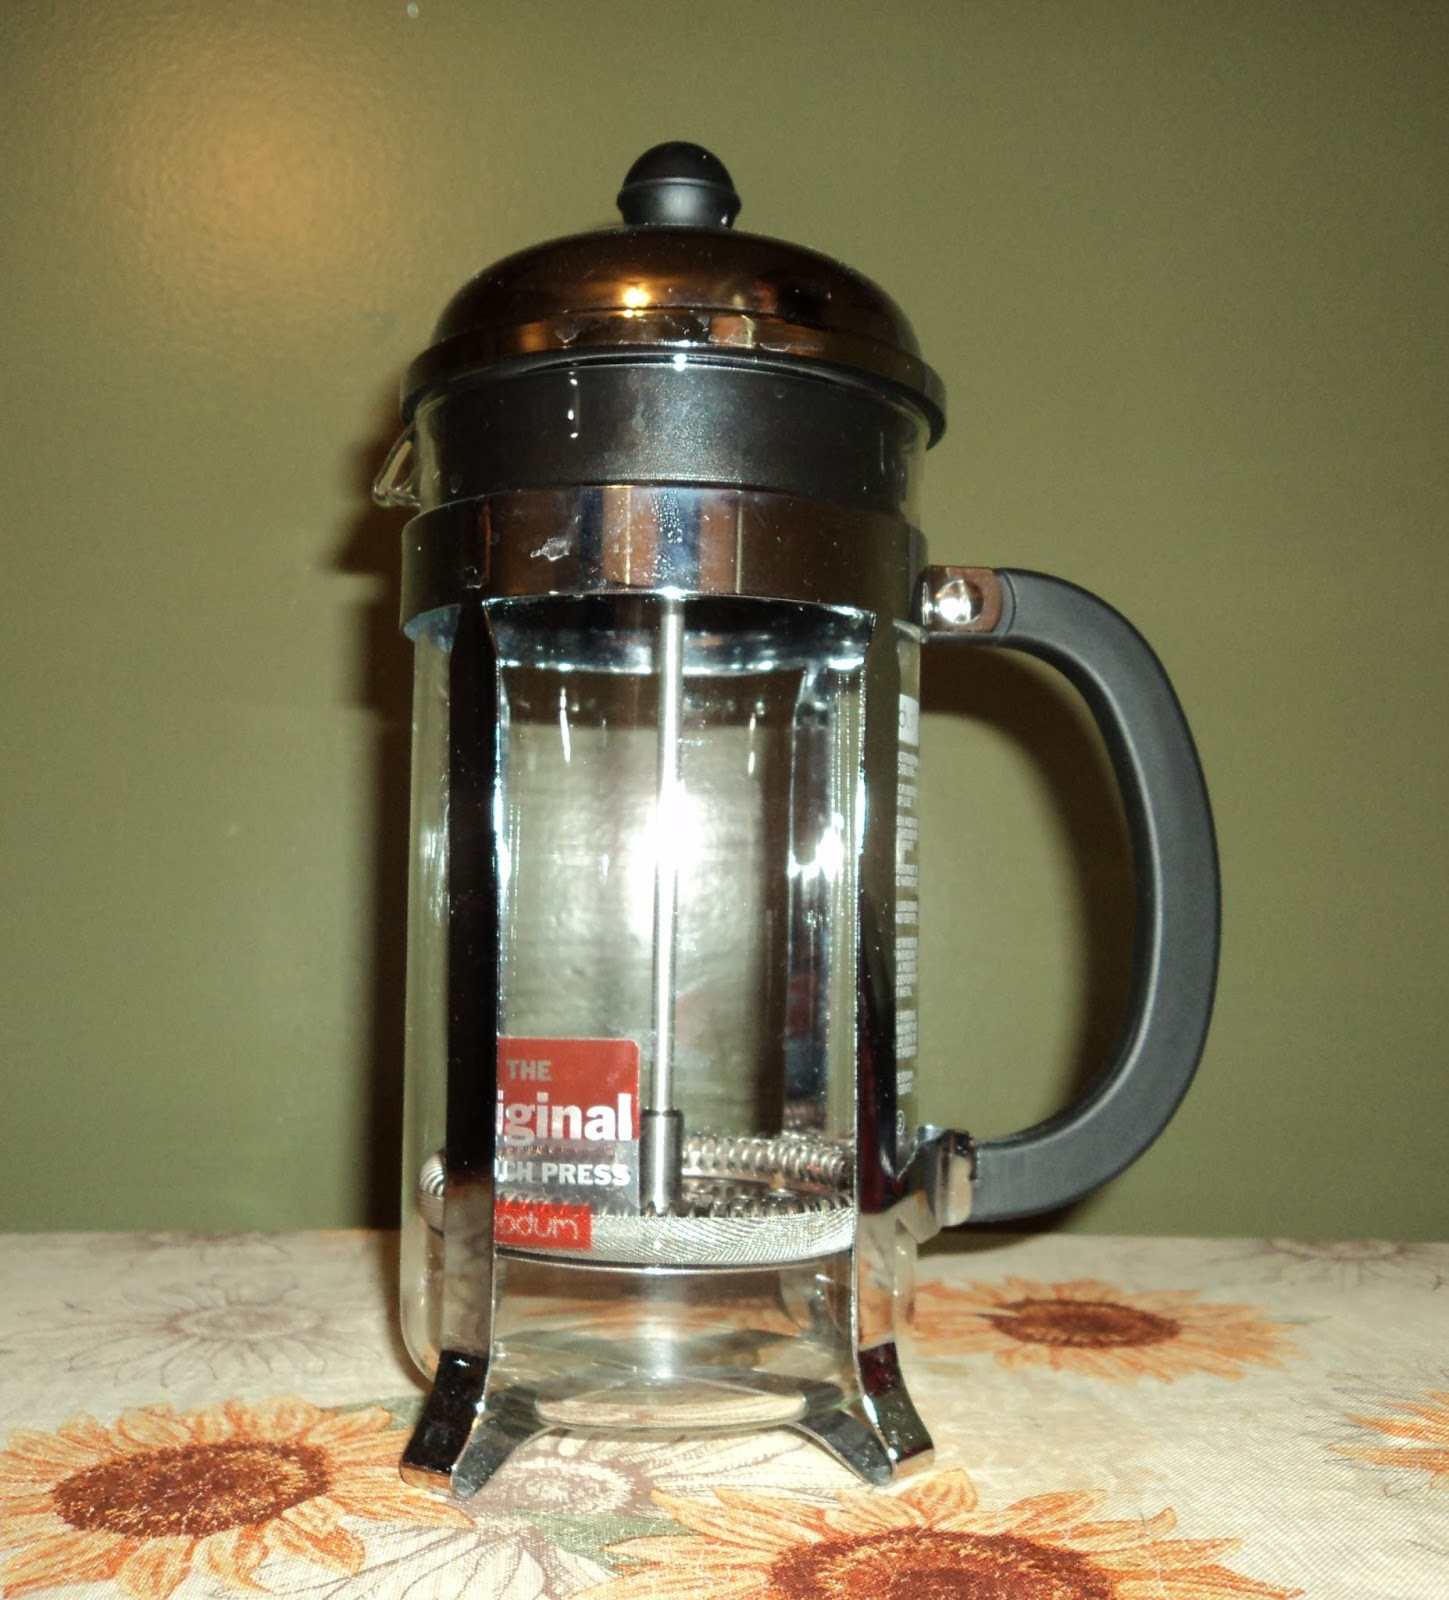 Bed bath beyond french press -  Up Space On Your Kitchen Counter Just A Simple French Press Coffeemaker Available At Target Bed Bath And Beyond Amazon Com Or Any Number Of Stores